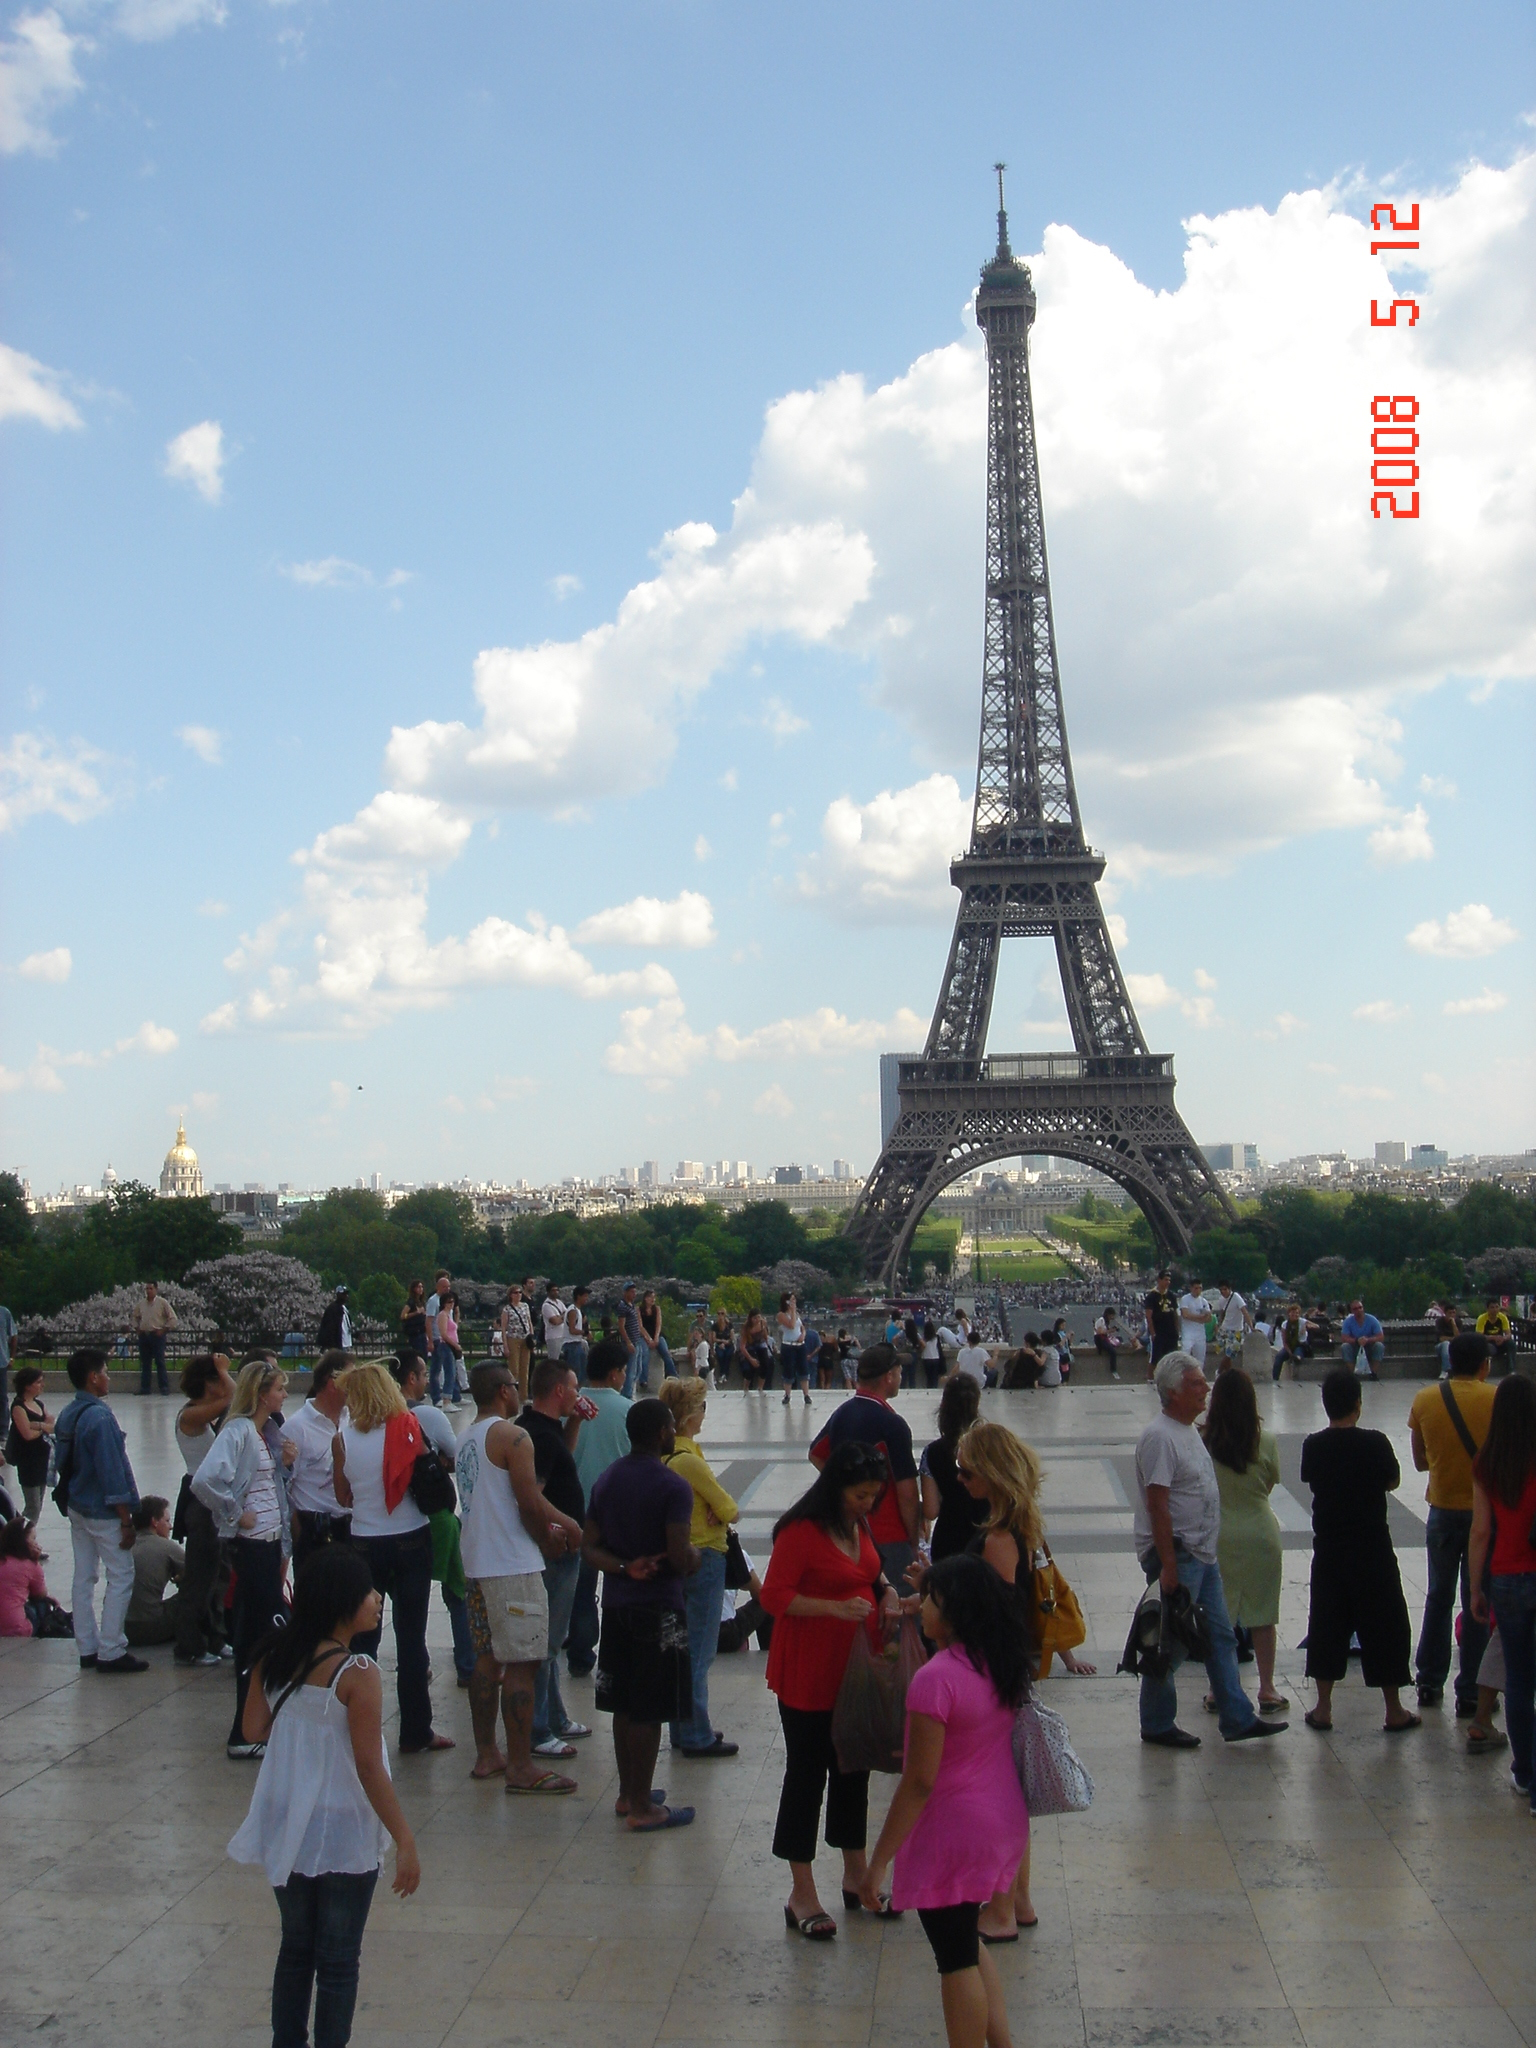 Paris_Trocadéro & Eiffel Tower - GamesforLanguage